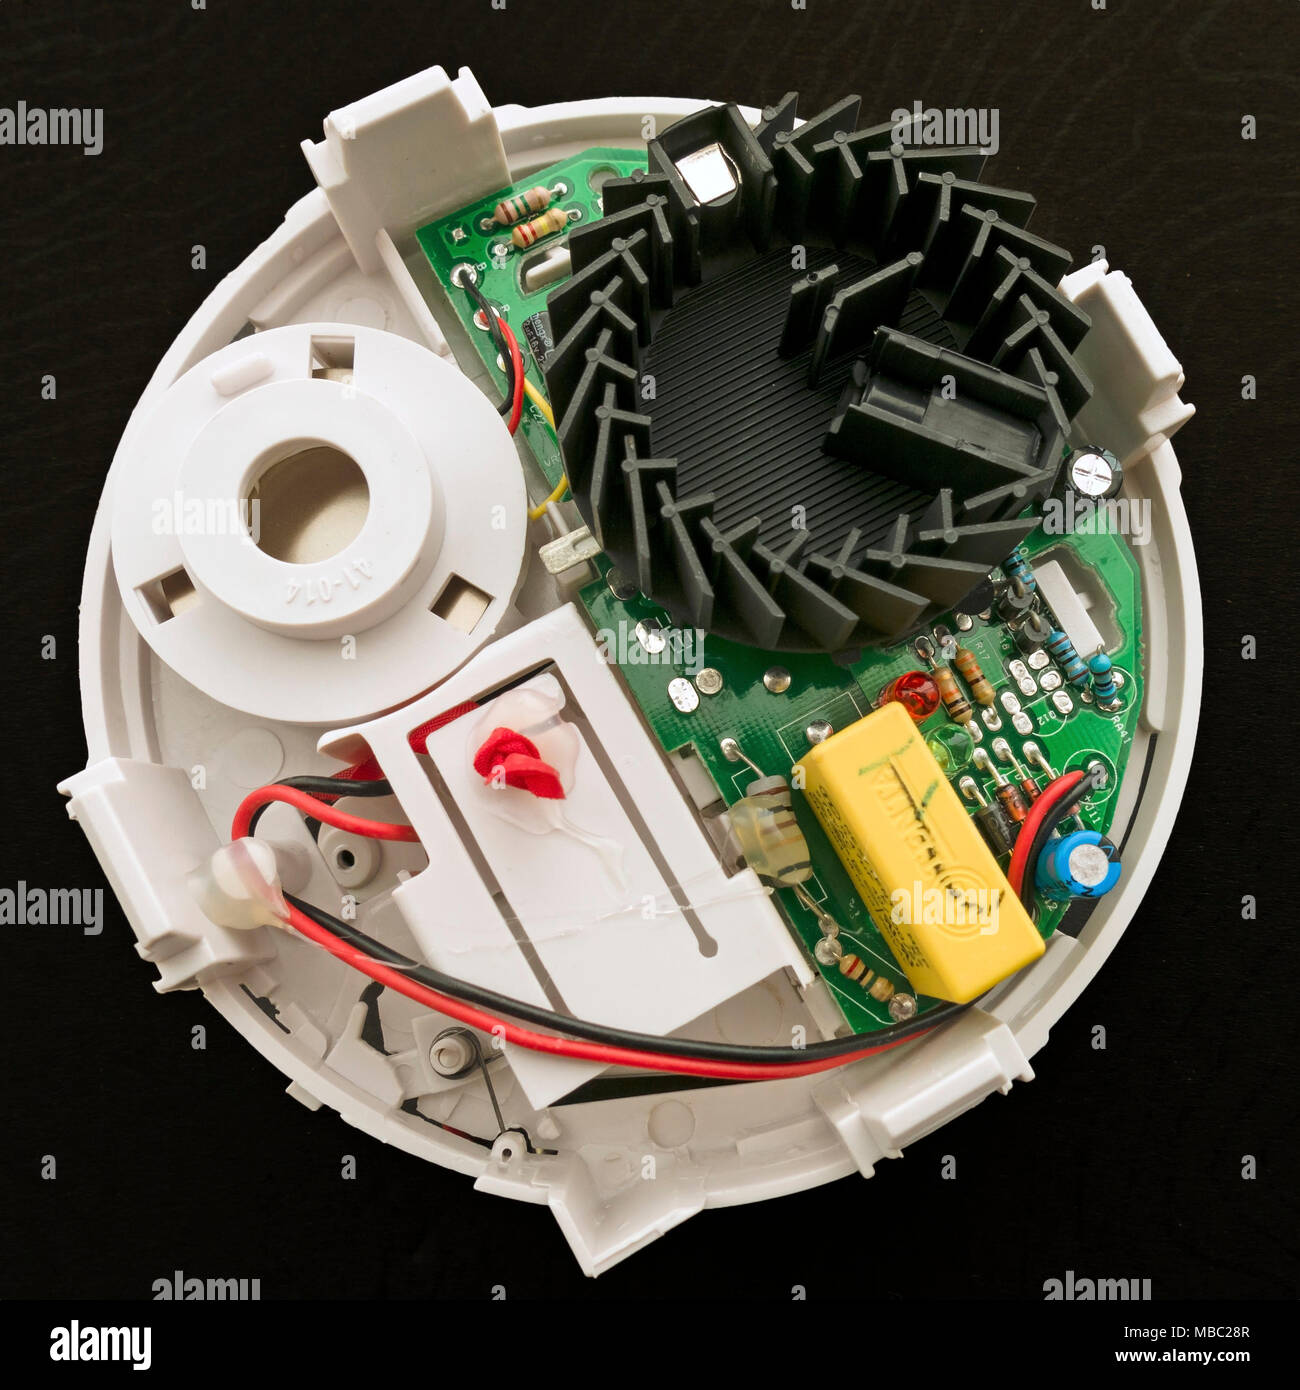 Components Inside An Optical Smoke Detector Showing The Black Photoelectric Circuit Detection Chamber Where Light Scattered By Particles Is Detected